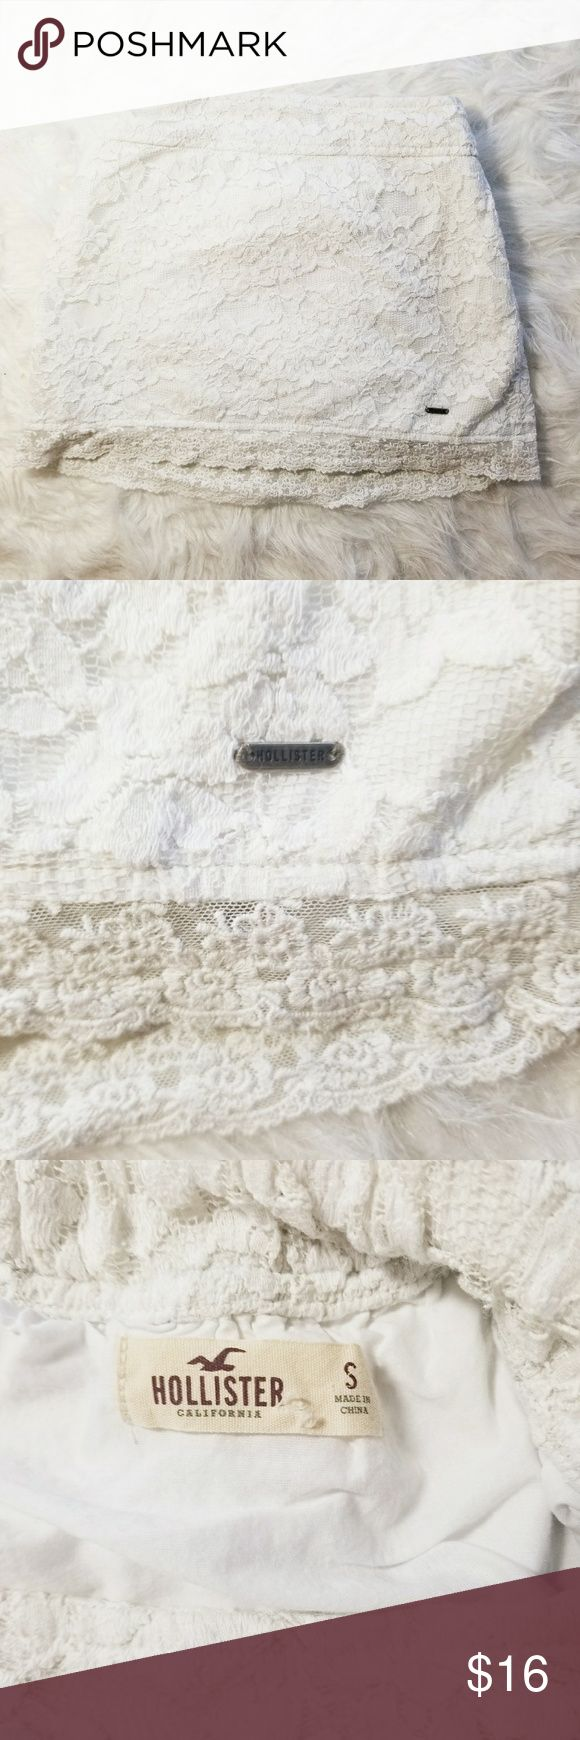 🎉3 for $15🎉 Hollister Off white Lace Mini Skirt Hollister White Lace Mini Skirt  -stretch waist -lining is 100% Cotton -shell is 68% Cotton 32% Nylon  -length laying flat 12 in. -waist laying flat 11.5 in.  -metal Hollister tag on right bottom corner  -size small -Gently Used Hollister Skirts Mini